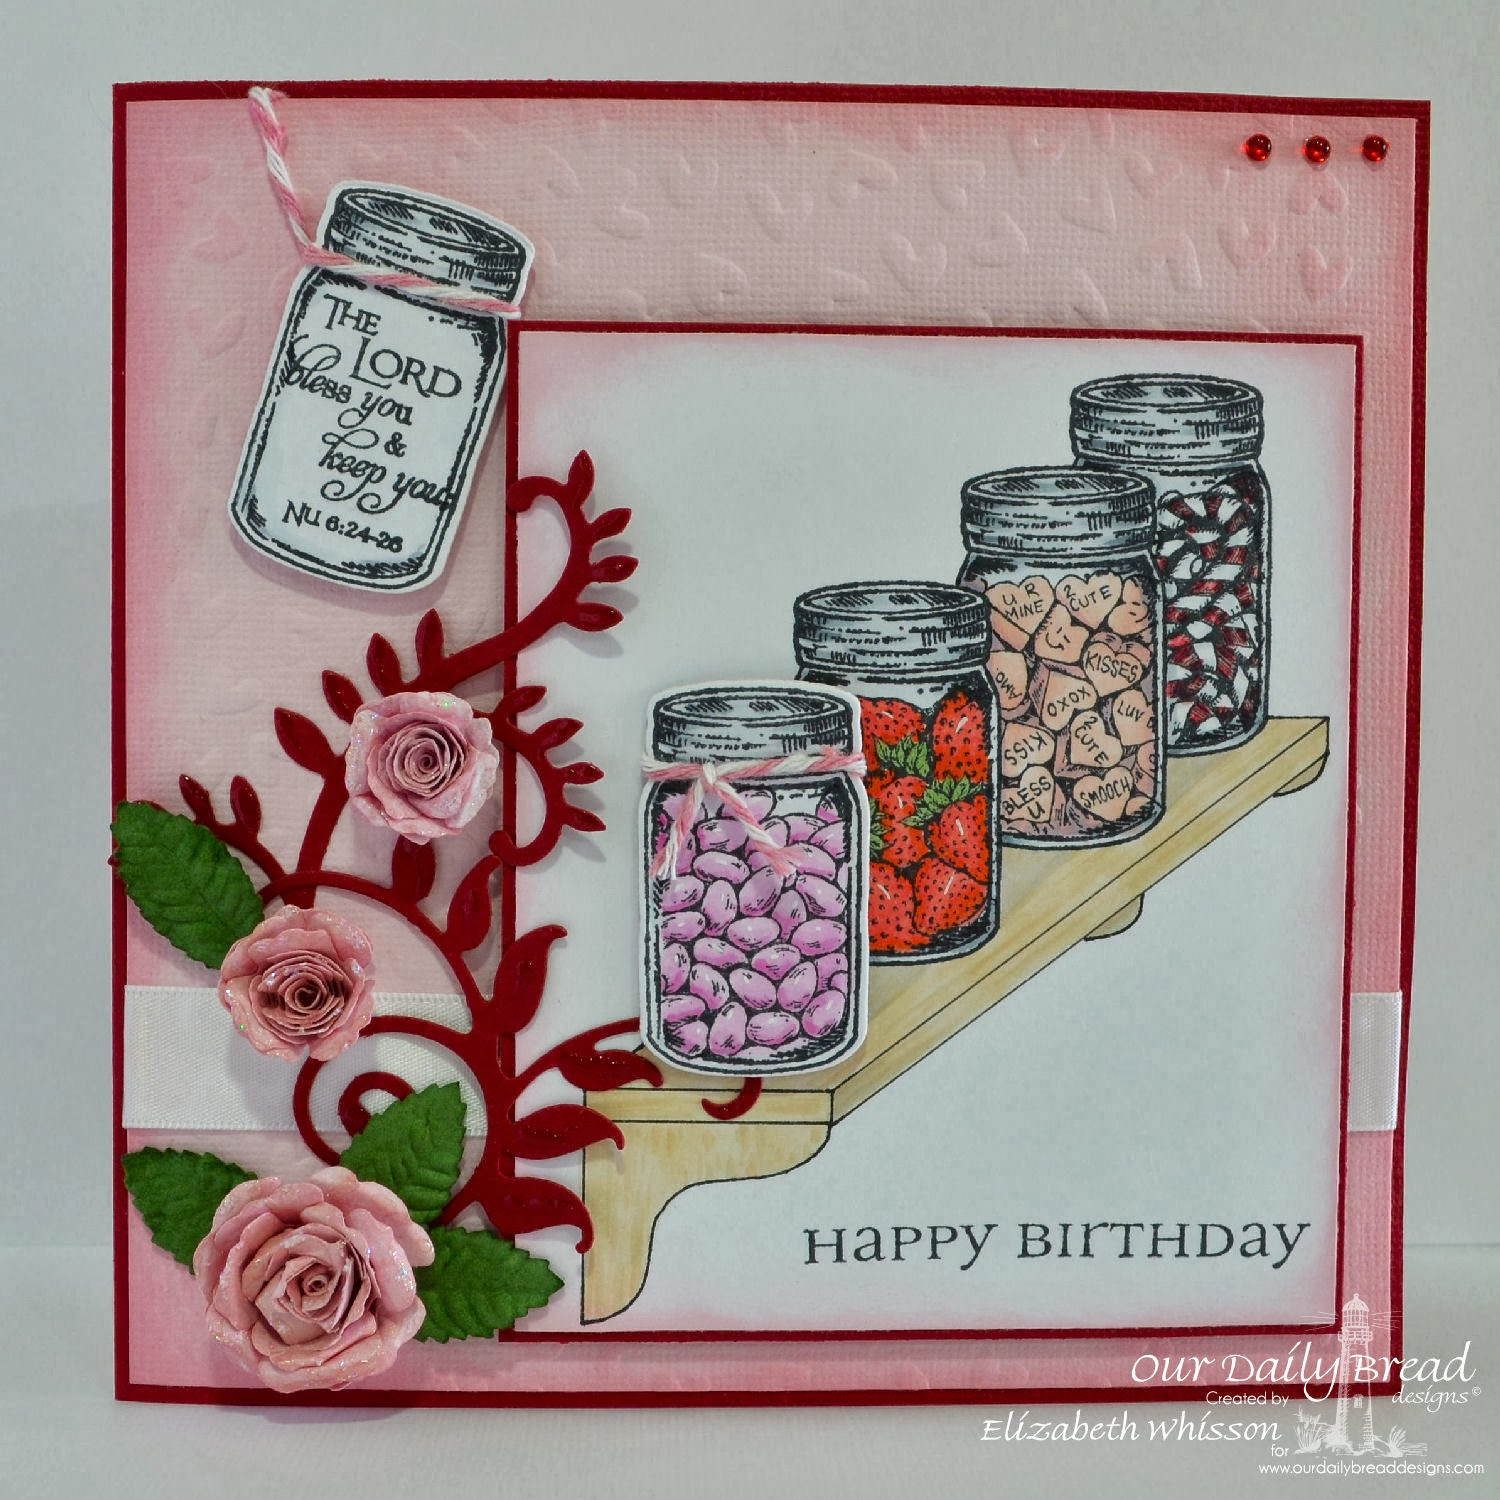 Our Daily Bread Designs, Canning Jars, Canning Jar Fillers, All Occasion Sentiments, Bookmarks-Scripture, ODBD Custom Canning Jar Dies, Elizabeth Whisson